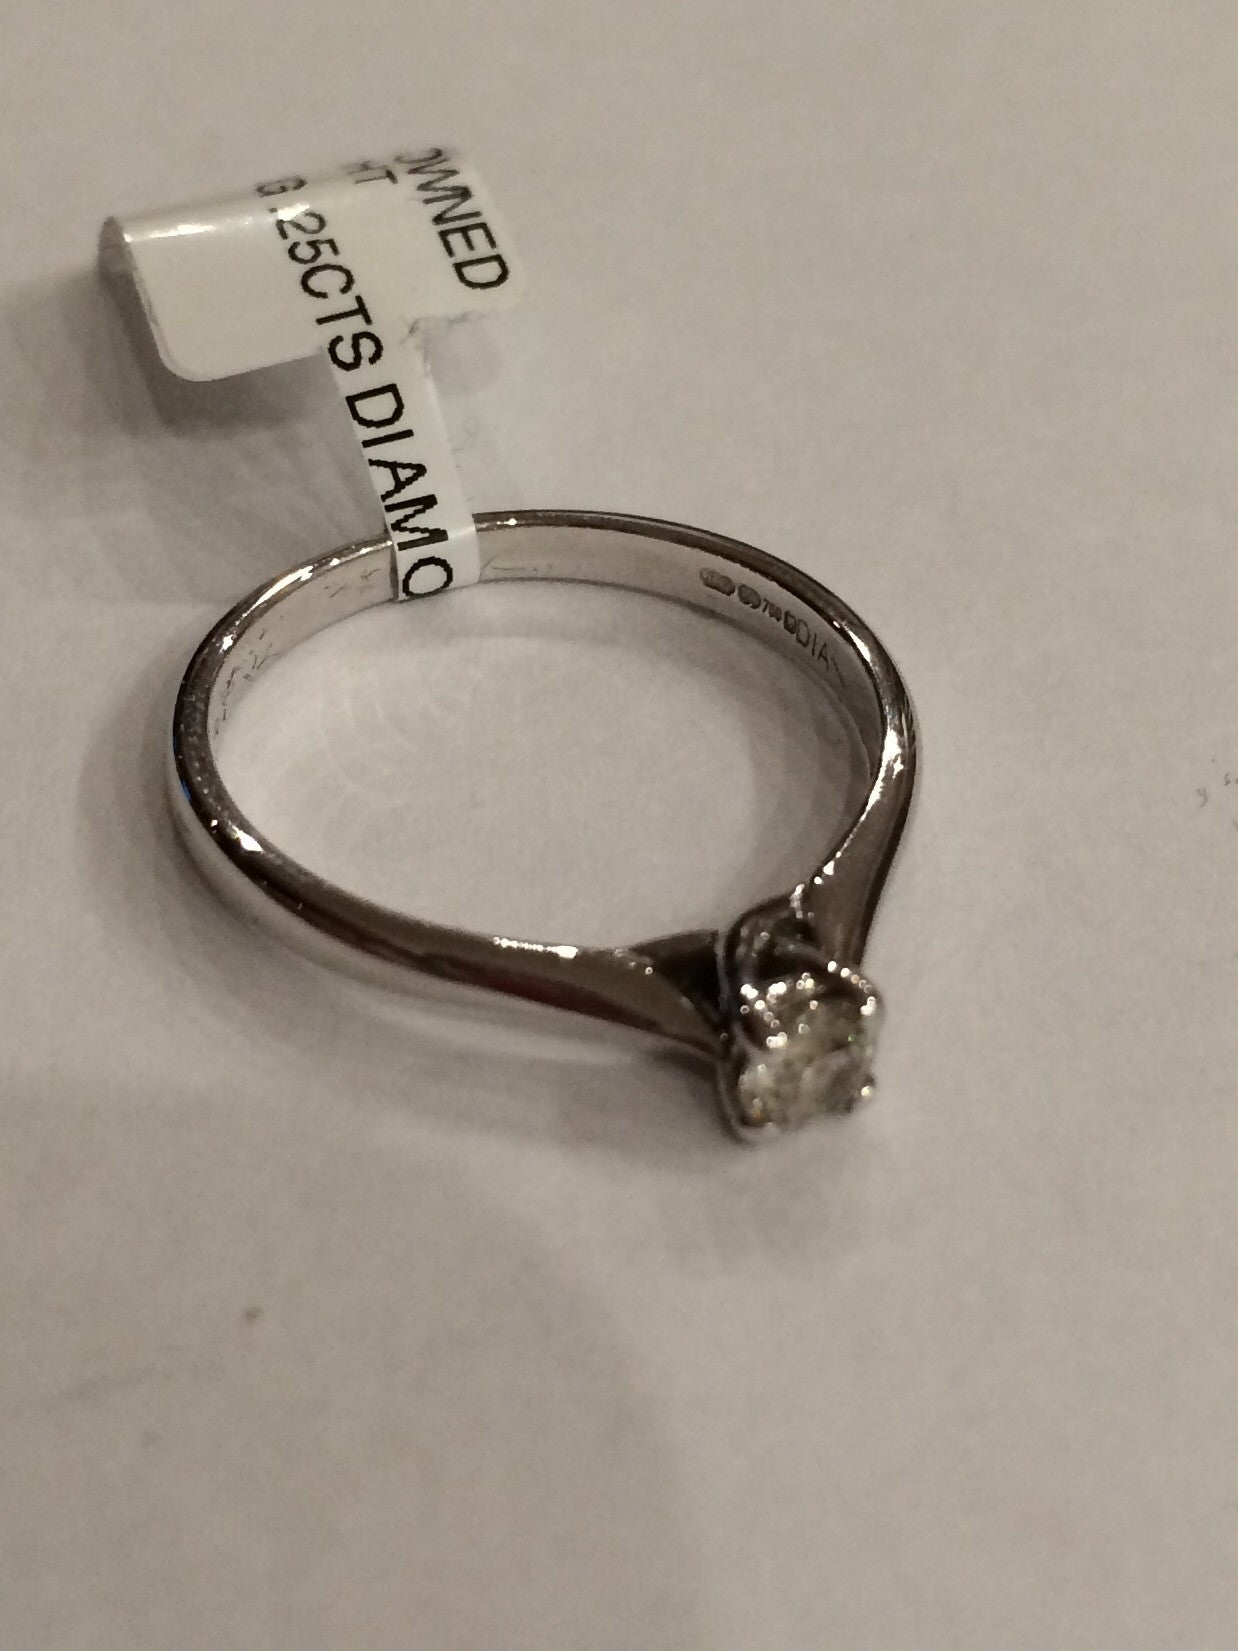 18ct WHITE GOLD 0.25CTS 4 CLAW DIAMOND RING WRIGHT - Robert Openshaw Fine Jewellery